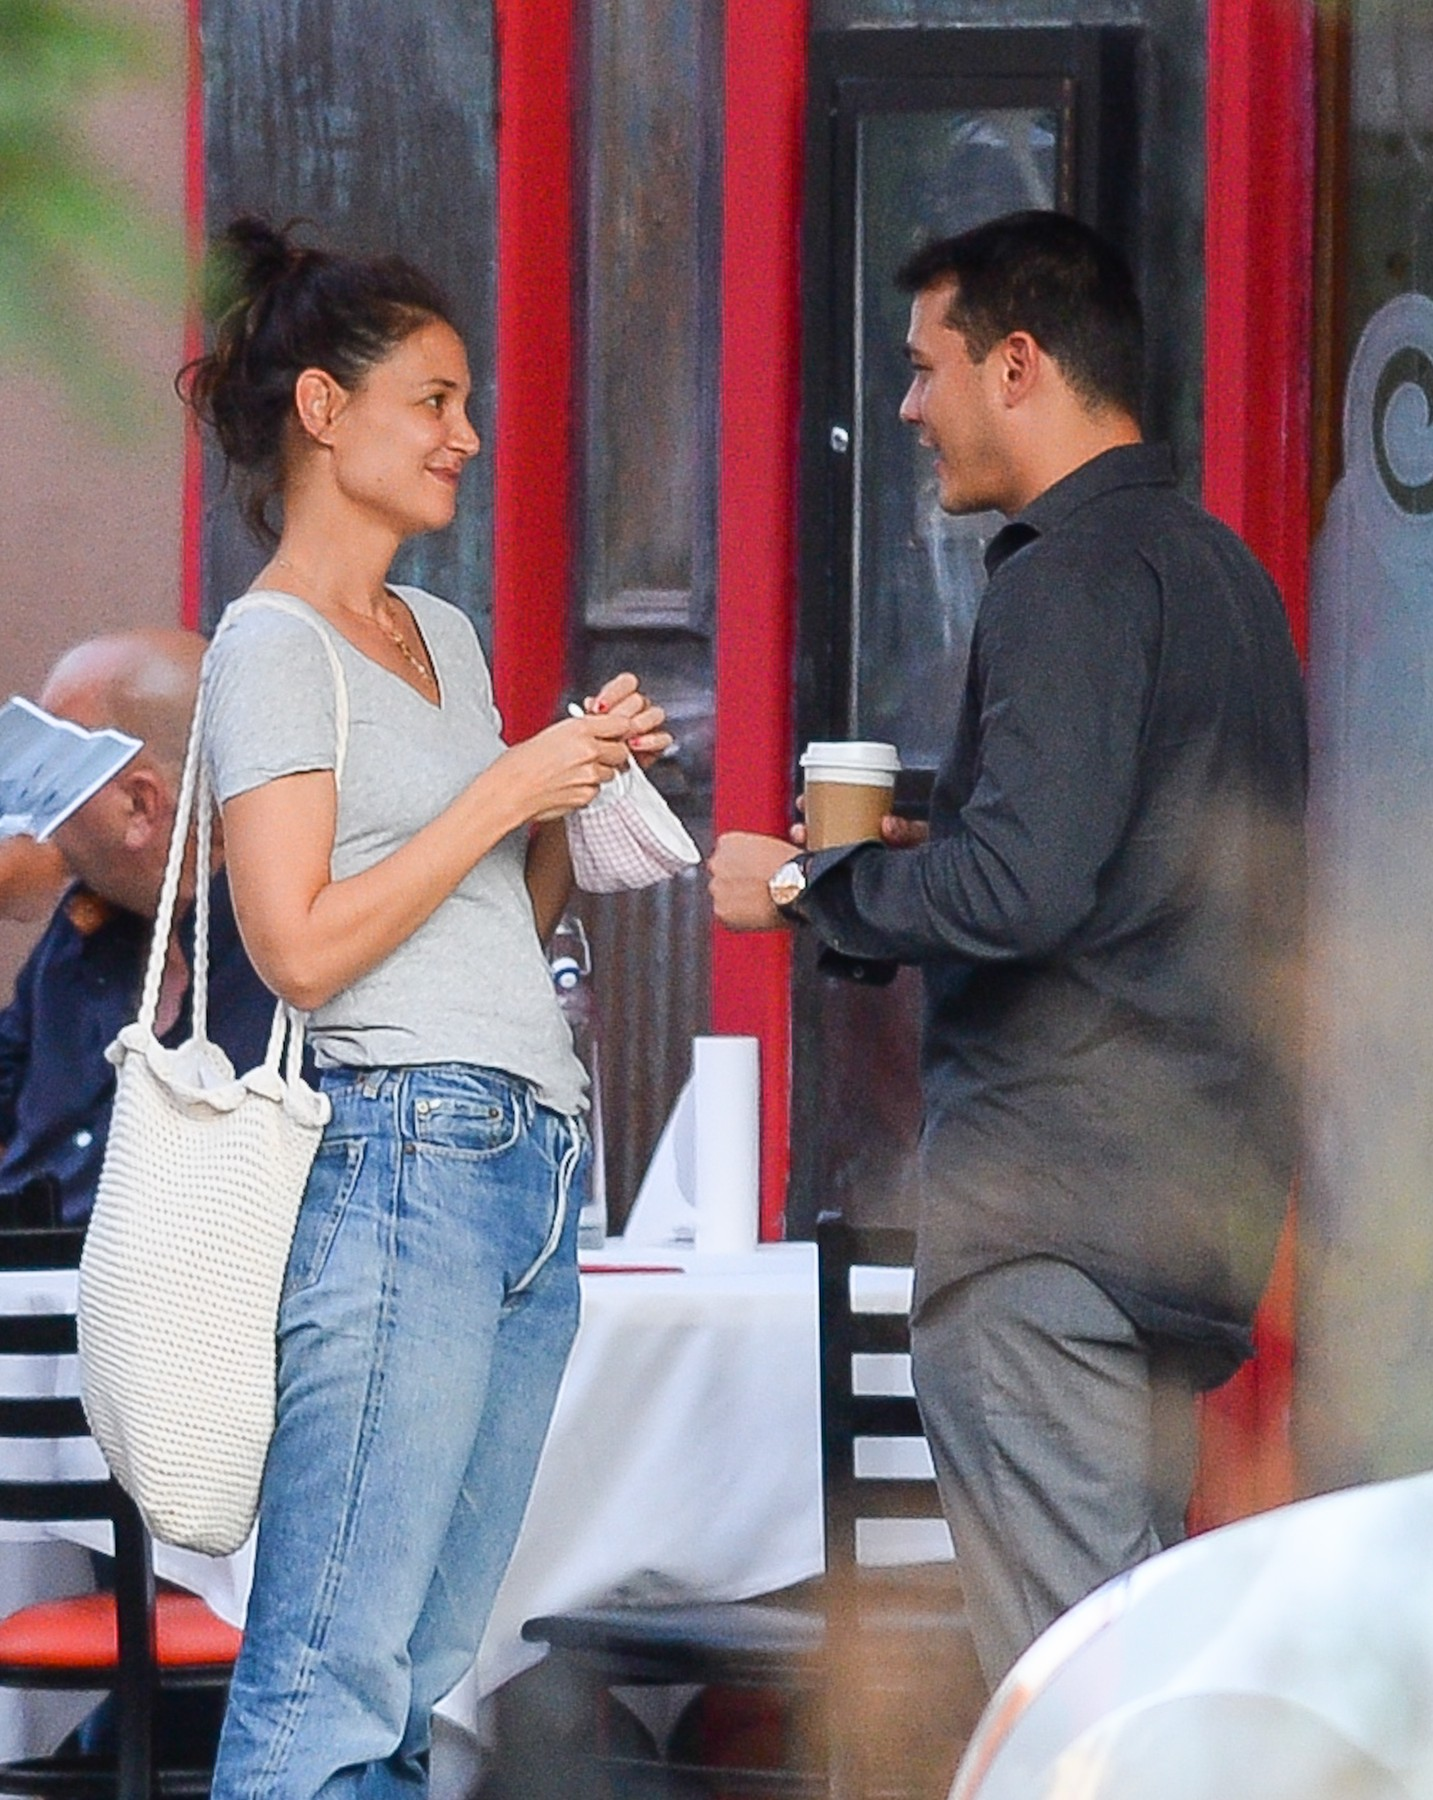 09/08/2020 PREMIUM EXCLUSIVE: Katie Holmes packs on the PDA with new boyfriend Emilio Vitolo Jr. in New York City. The 41 year old actress and the restaurateur met up for a coffee where the duo engaged in a public makeout session. Holmes looked positively giddy with excitement as she smiled from ear to ear while meeting up with her first love interest since her split from Jamie Foxx.,Image: 557284547, License: Rights-managed, Restrictions: Exclusive NO usage without agreed price and terms. Please contact sales@theimagedirect.com, Model Release: no, Credit line: TheImageDirect.com / The Image Direct / Profimedia